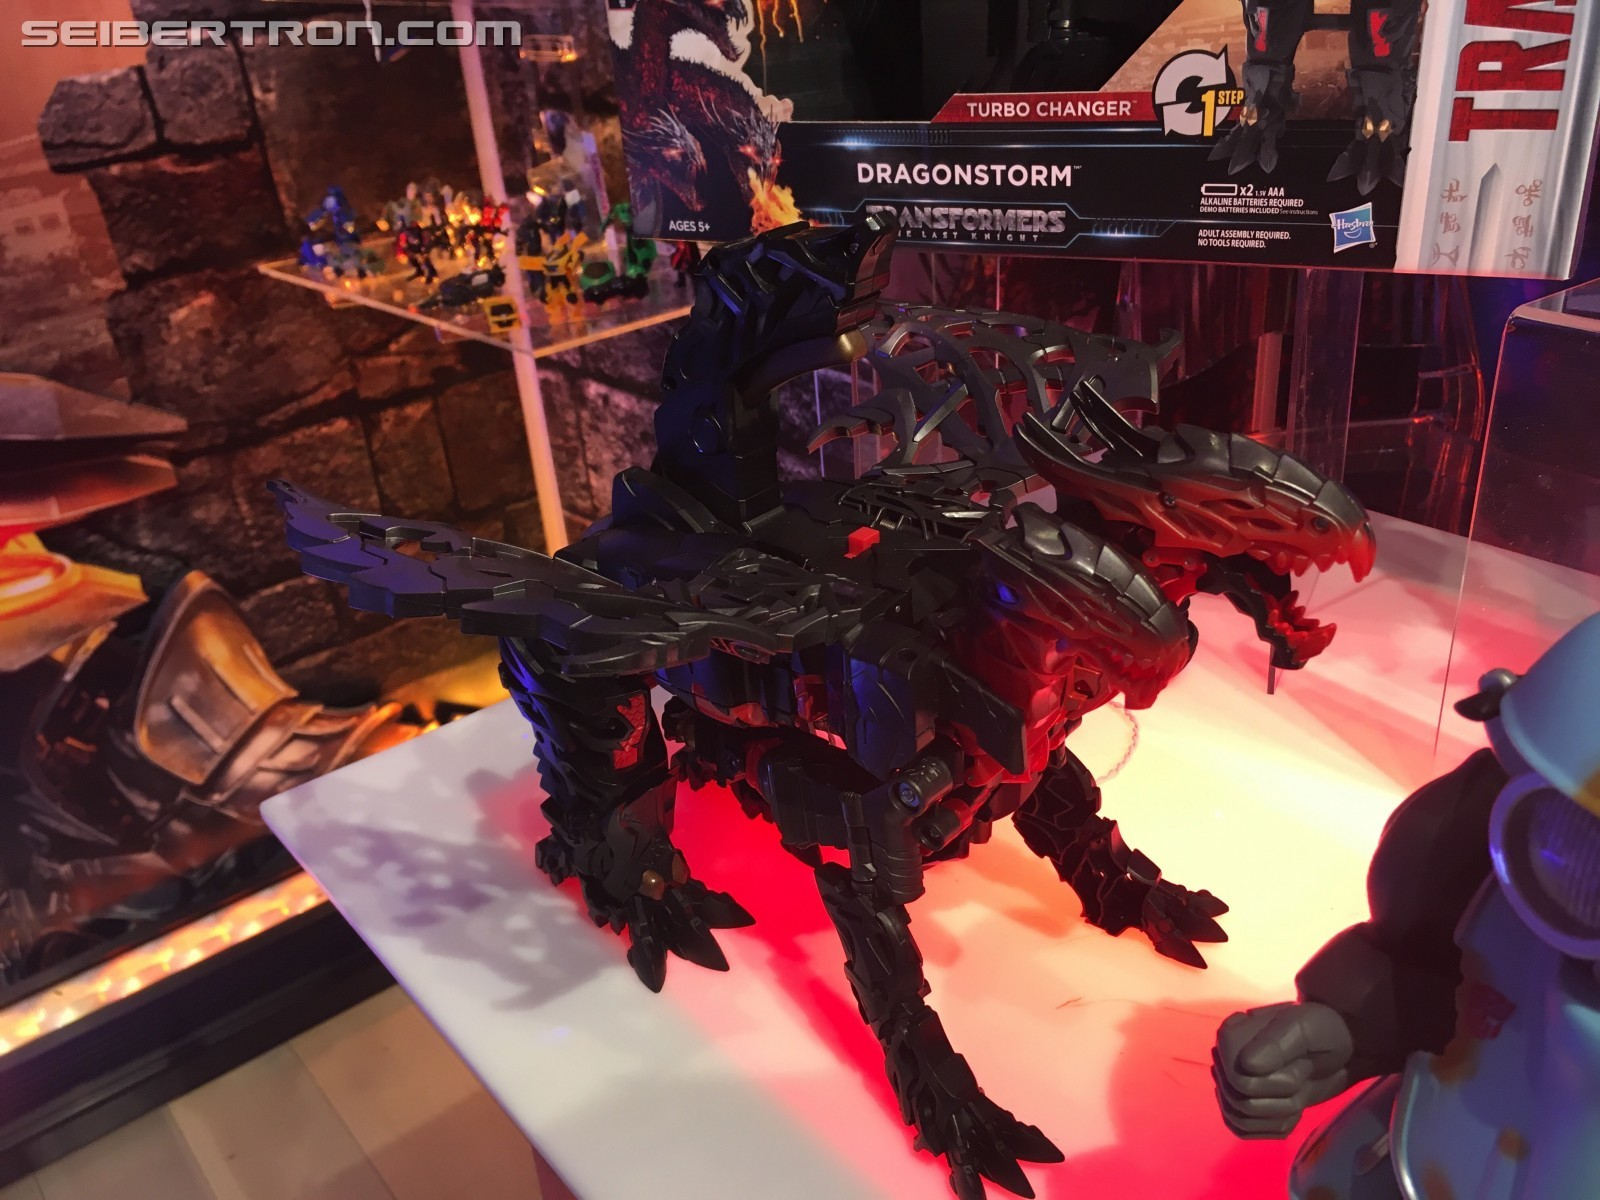 Transformers News: Toy Fair 2017 - Showroom Images of Transformers: The Last Knight Turbo Changer Dragonstorm